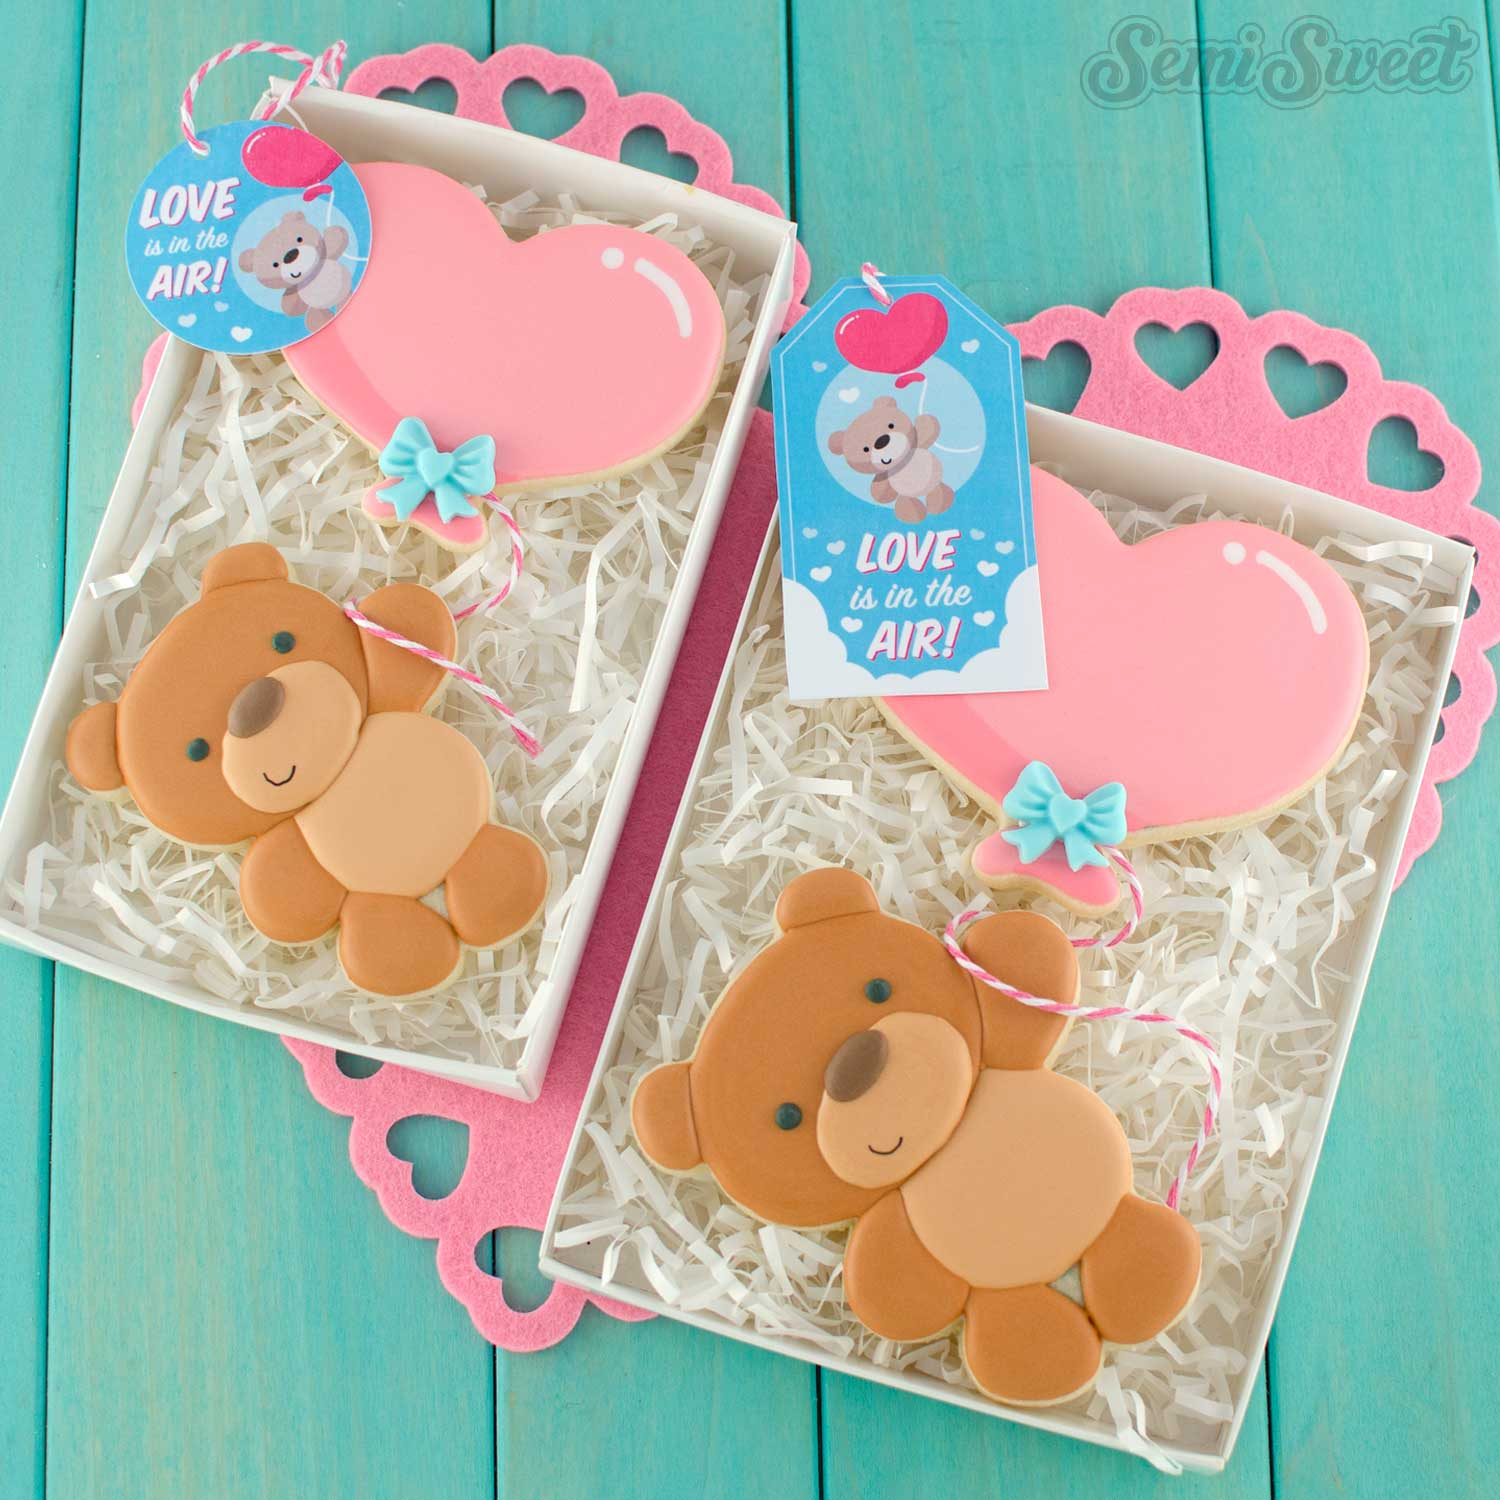 Balloon Teddy Bear Cookie Set with Tags | Semi Sweet Designs